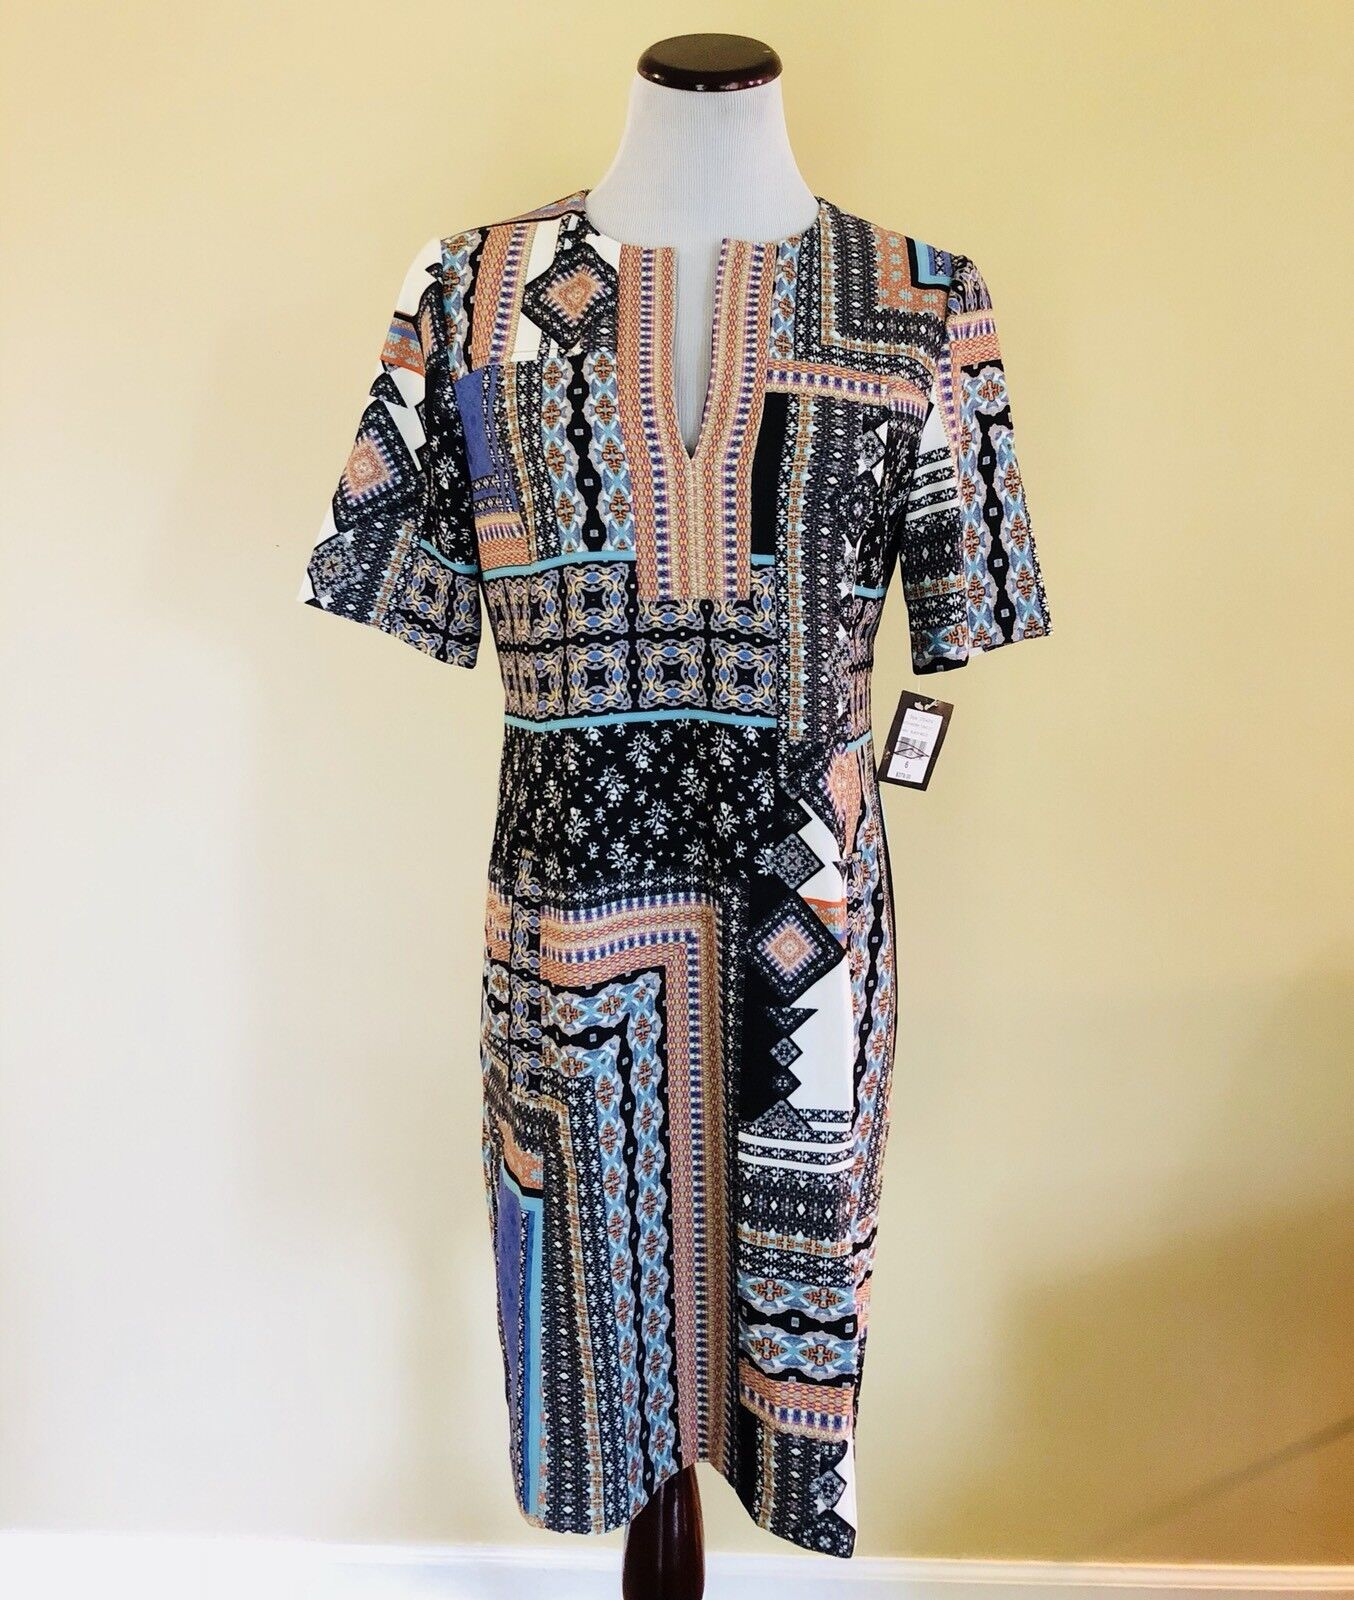 New Nanette Lepore Patchwork Tunic Dress 60s Mod Style Size 6 Retails  378